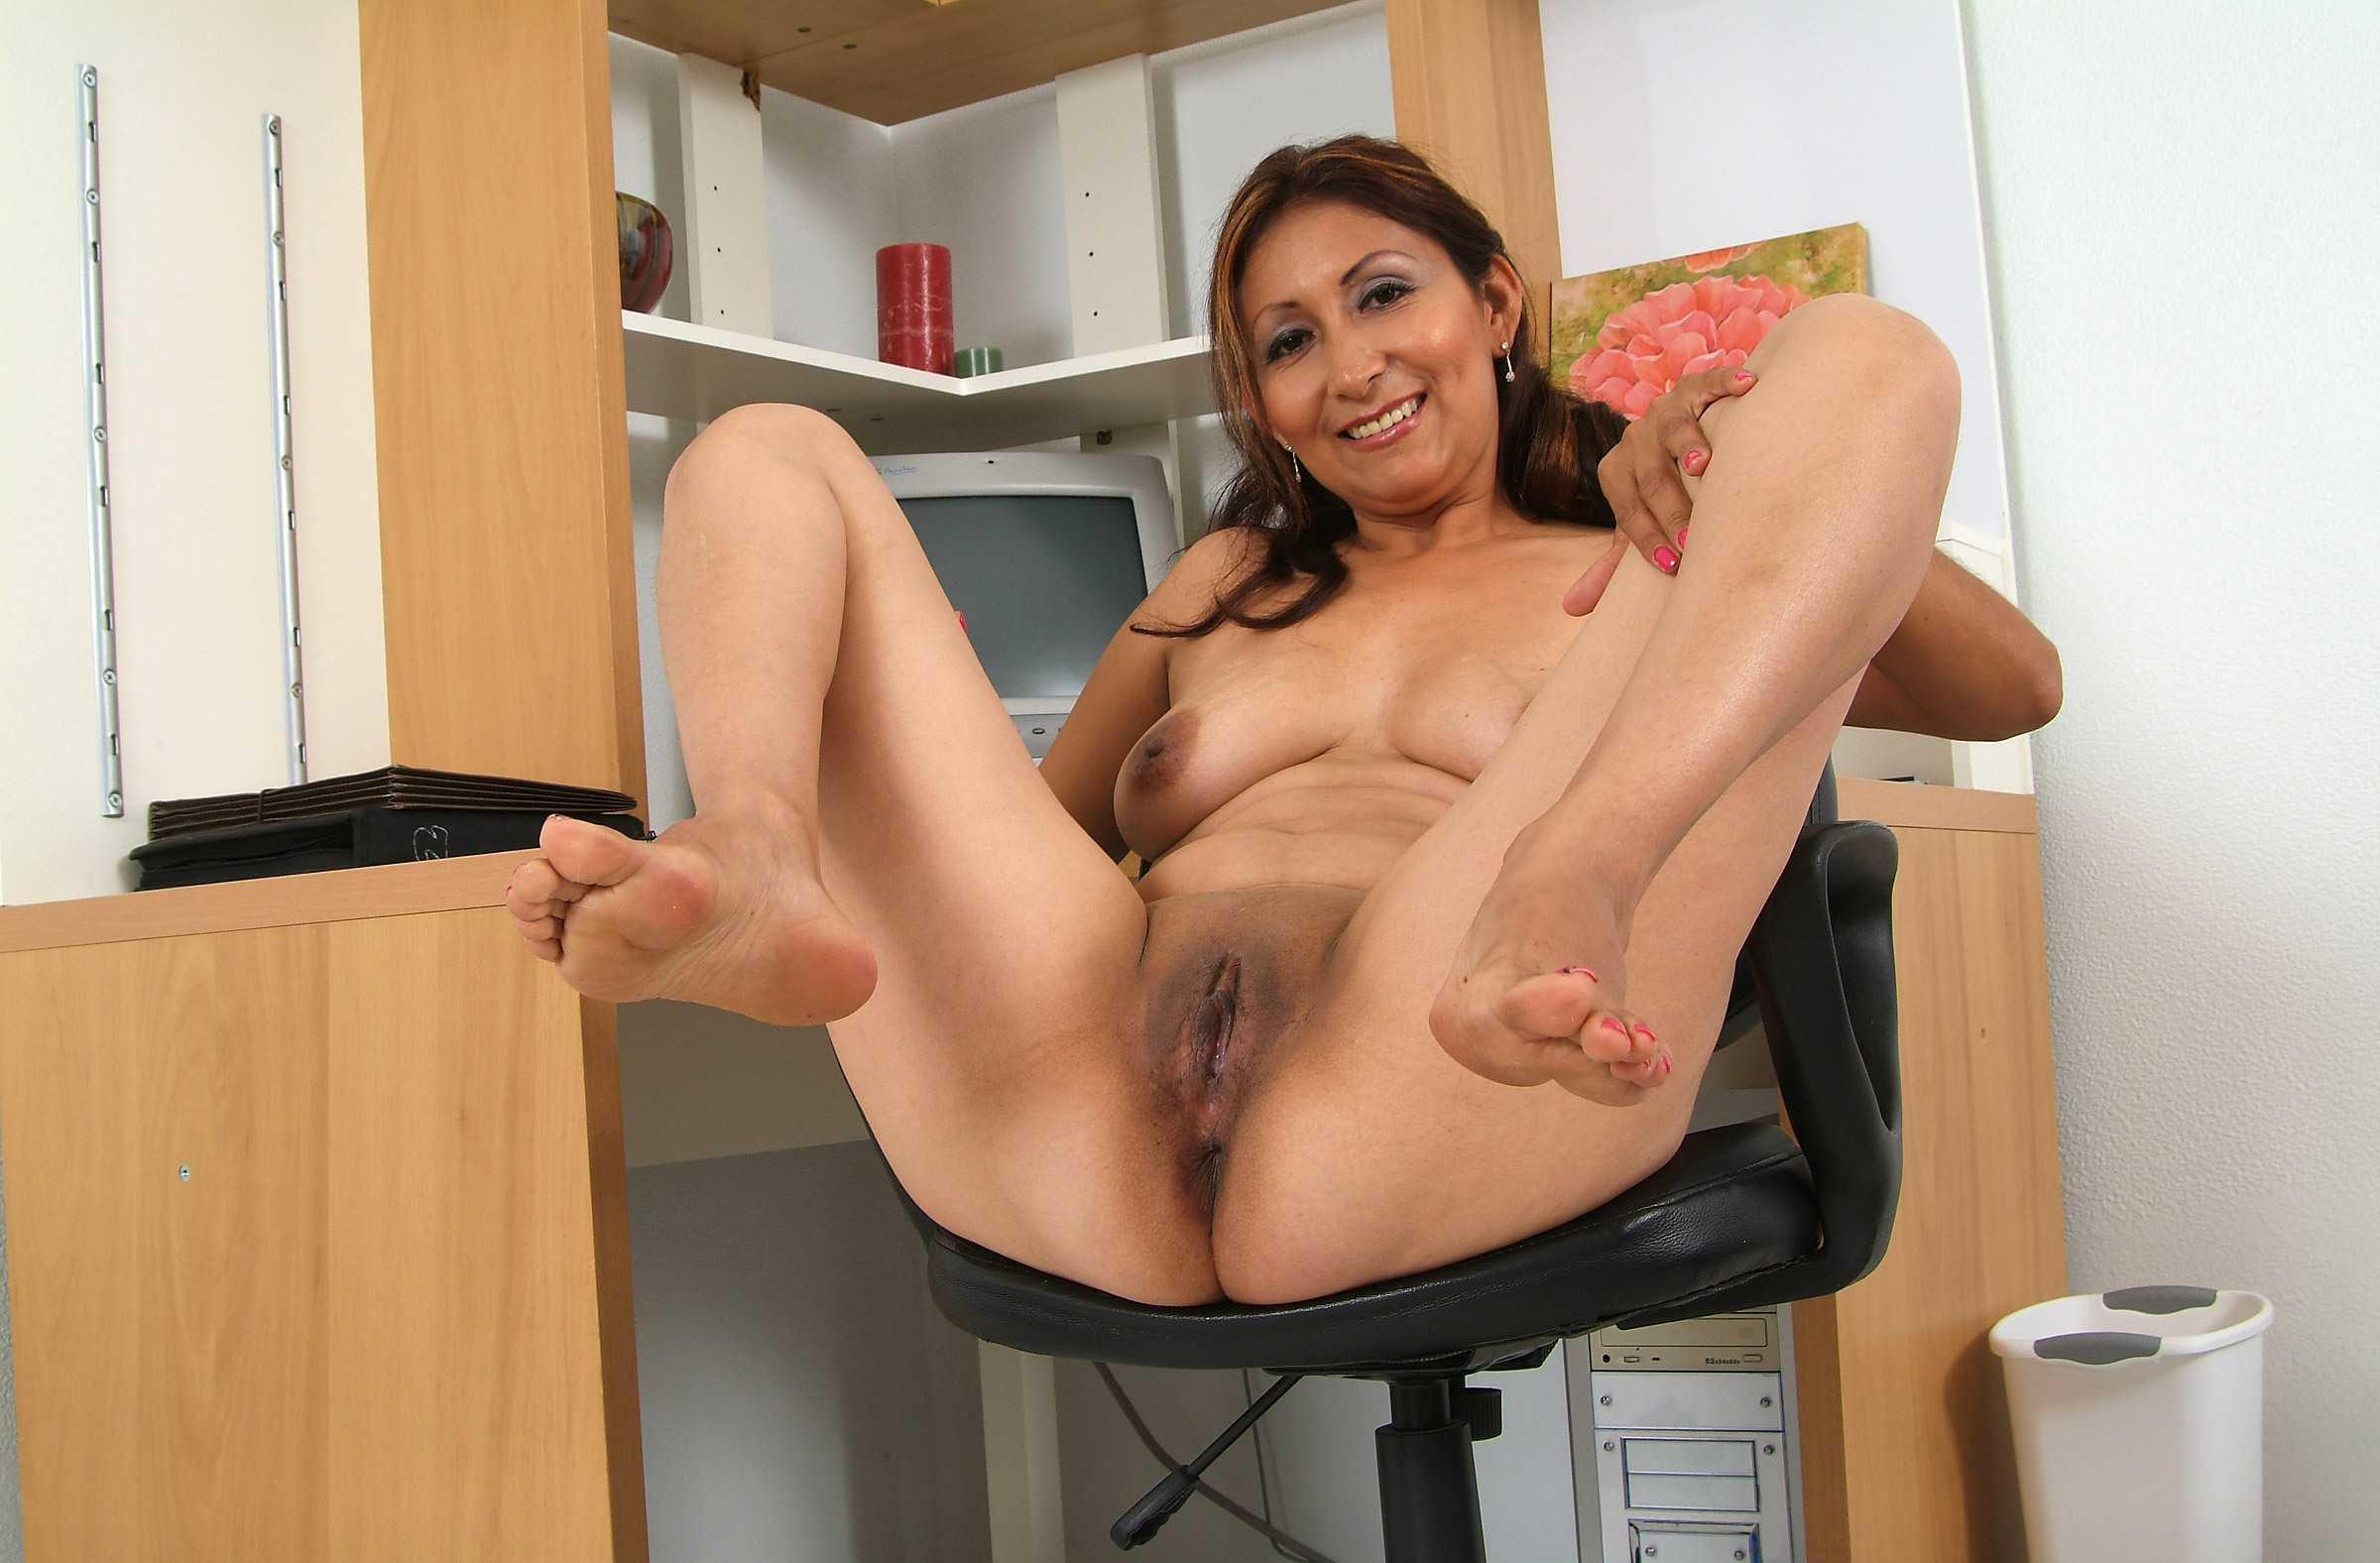 80S Latina Porn mature latina porn free movies . pussy sex images. comments: 1